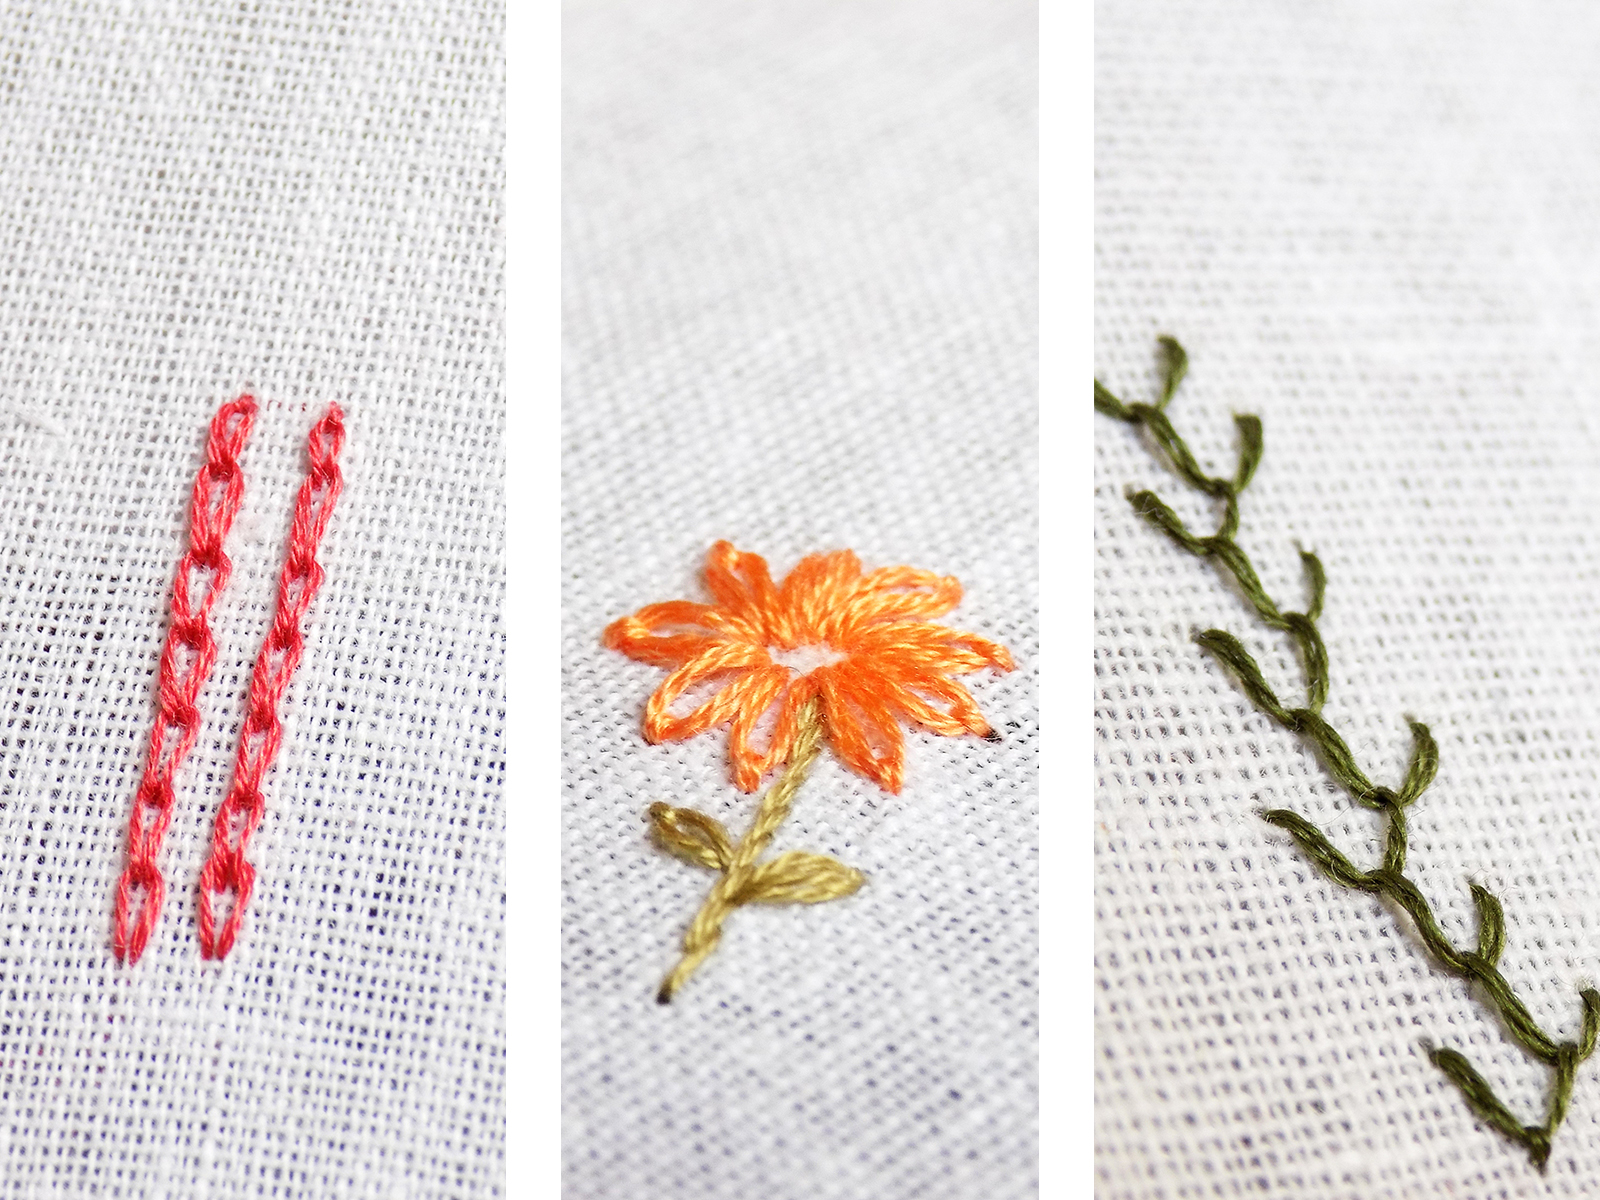 April stitches